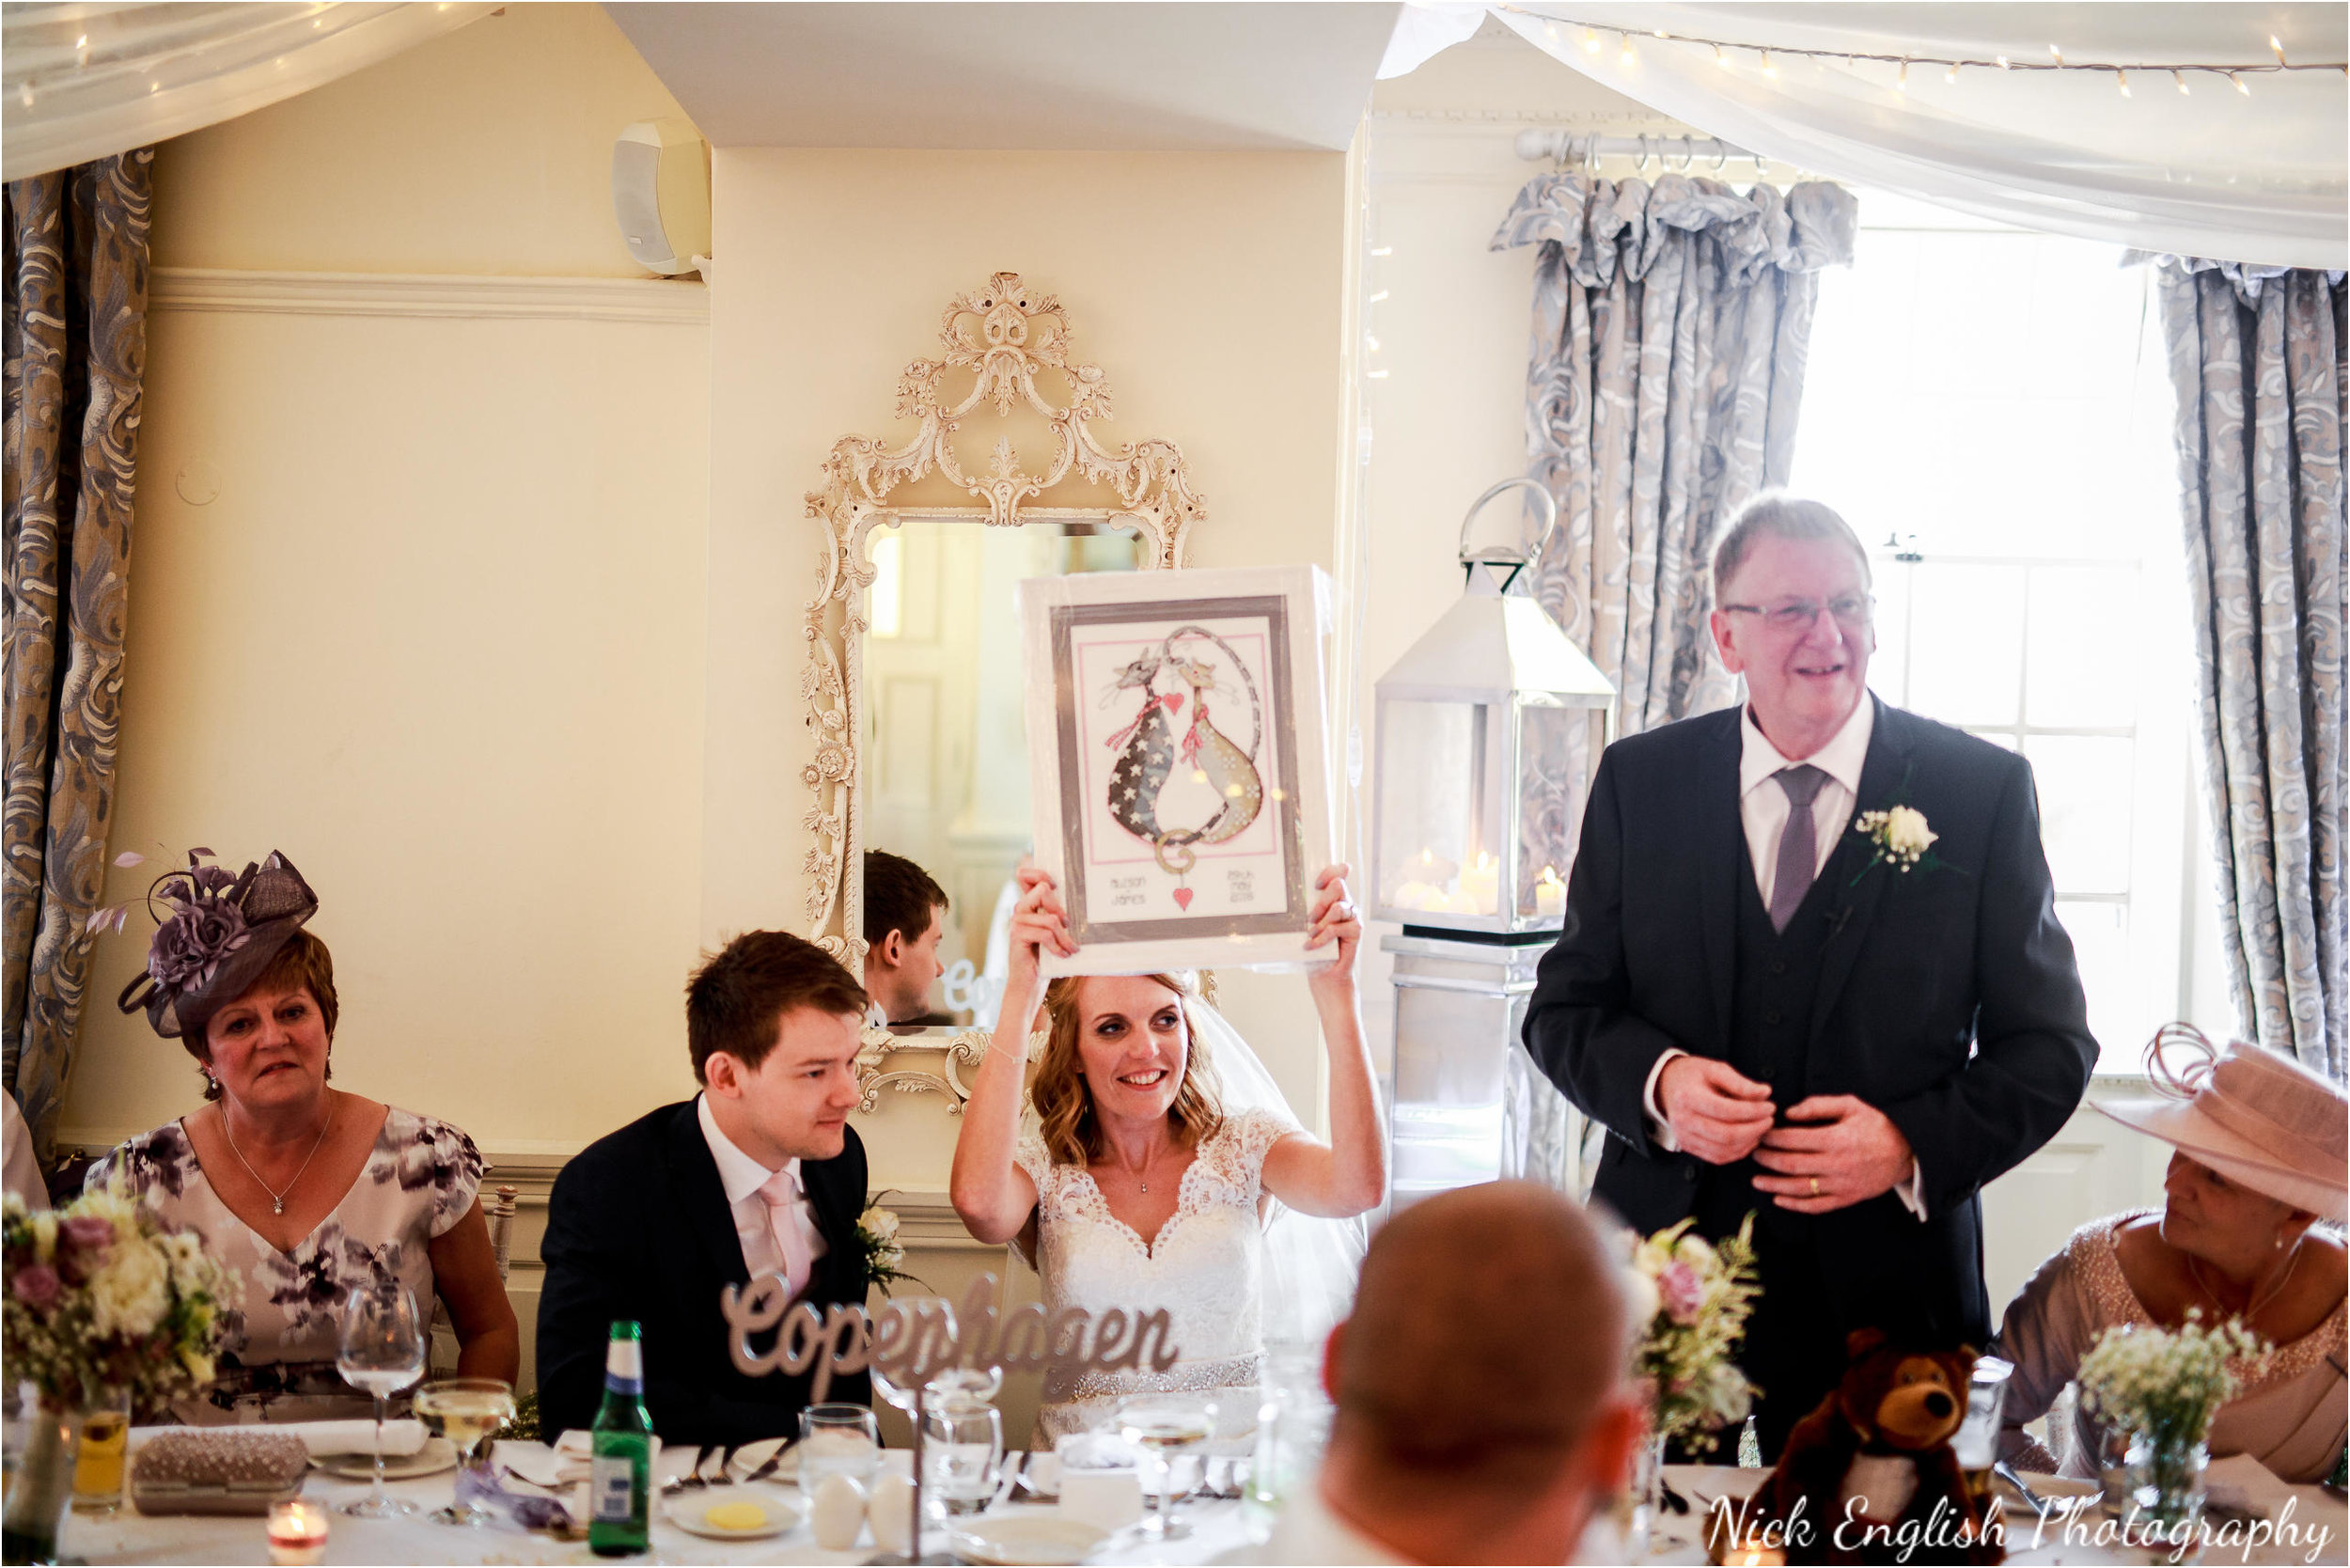 Alison James Wedding Photographs at Eaves Hall West Bradford 171jpg.jpeg